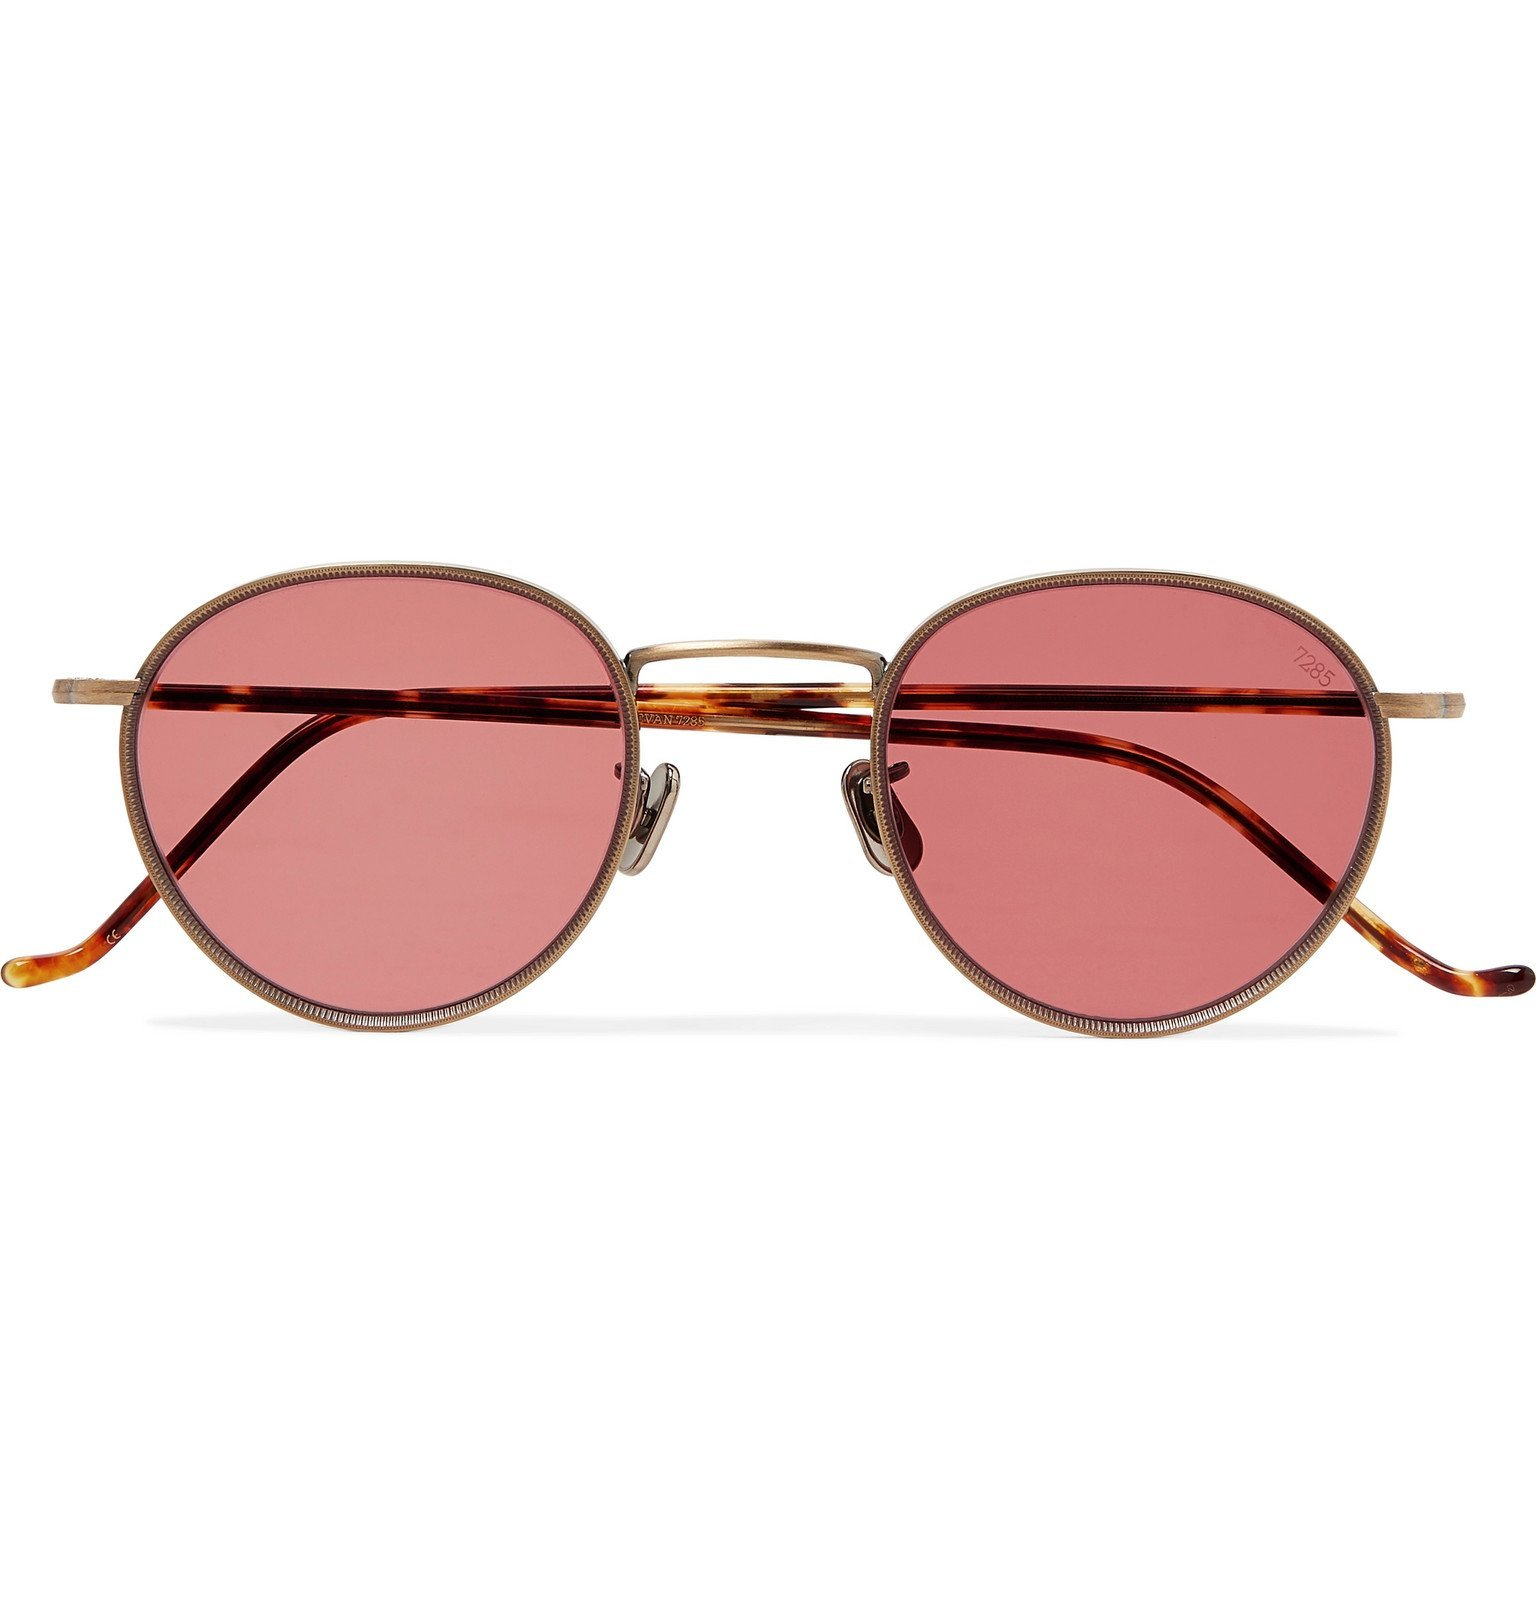 Photo: Eyevan 7285 - Round-Frame Gold-Tone Titanium and Tortoiseshell Acetate Sunglasses - Gold